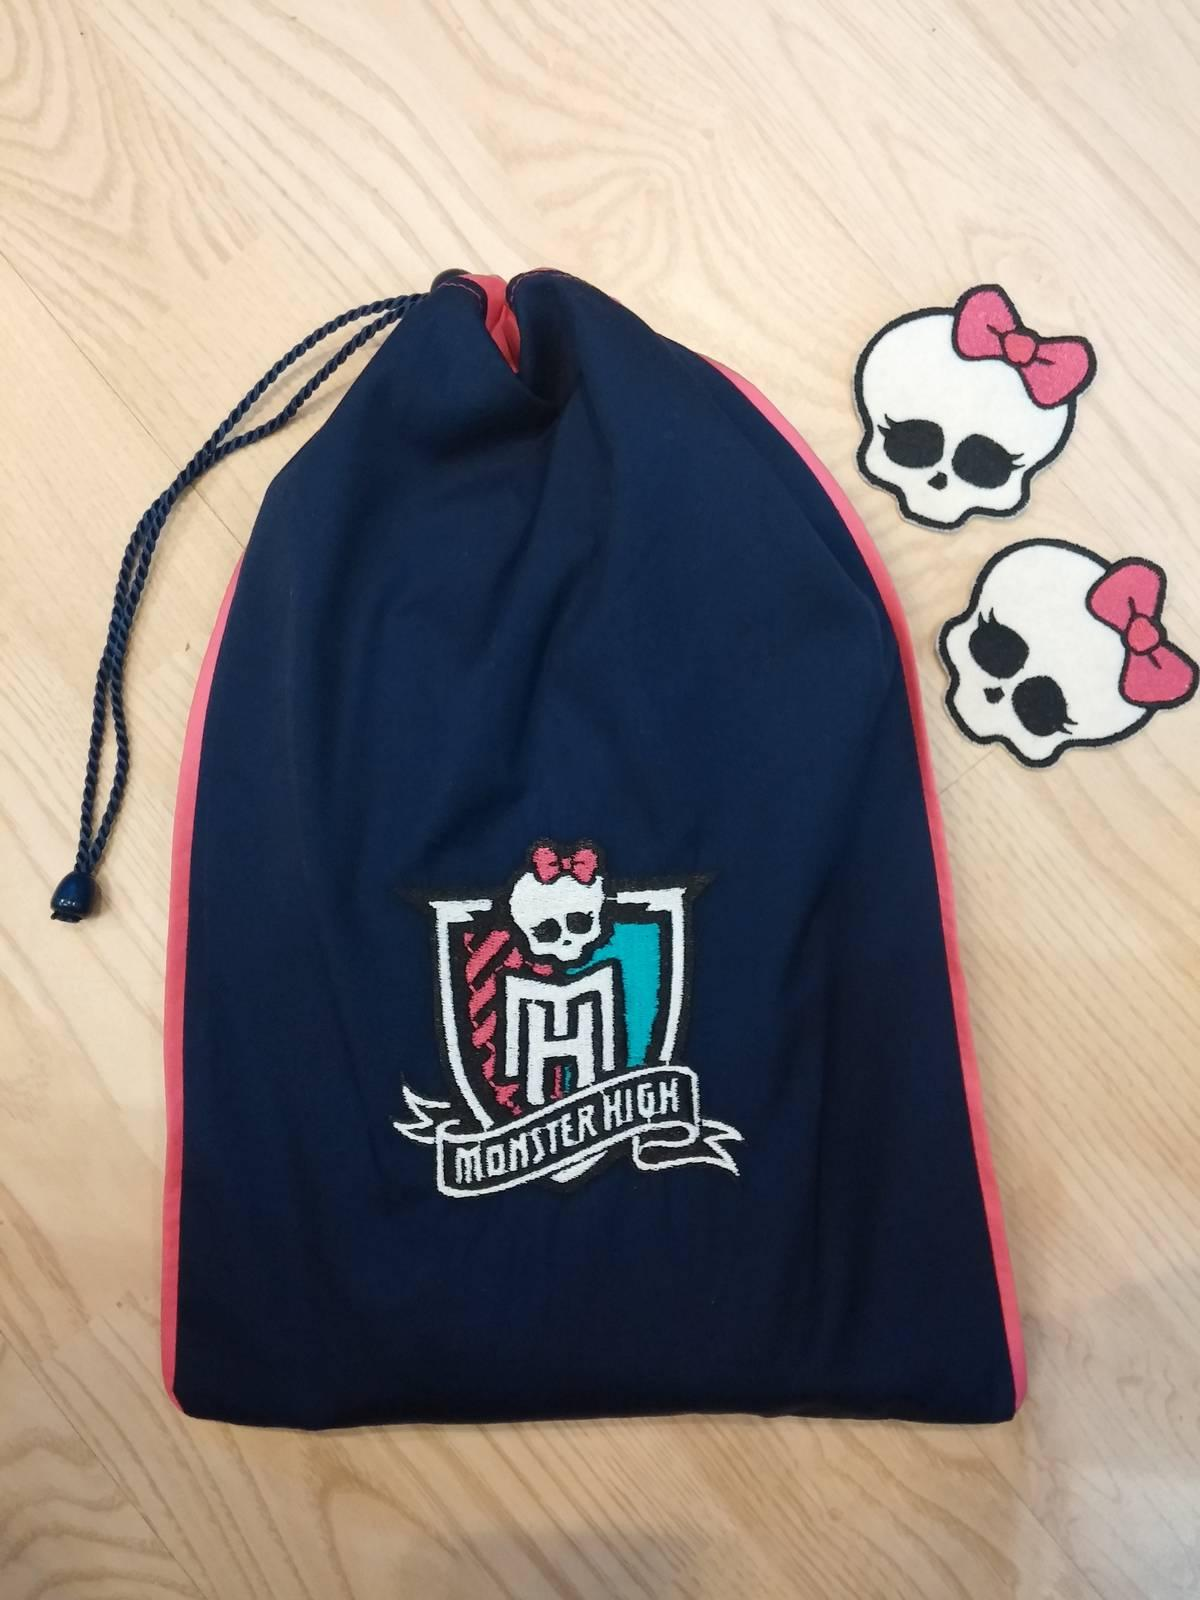 School bag with Monster High logo embroidery design